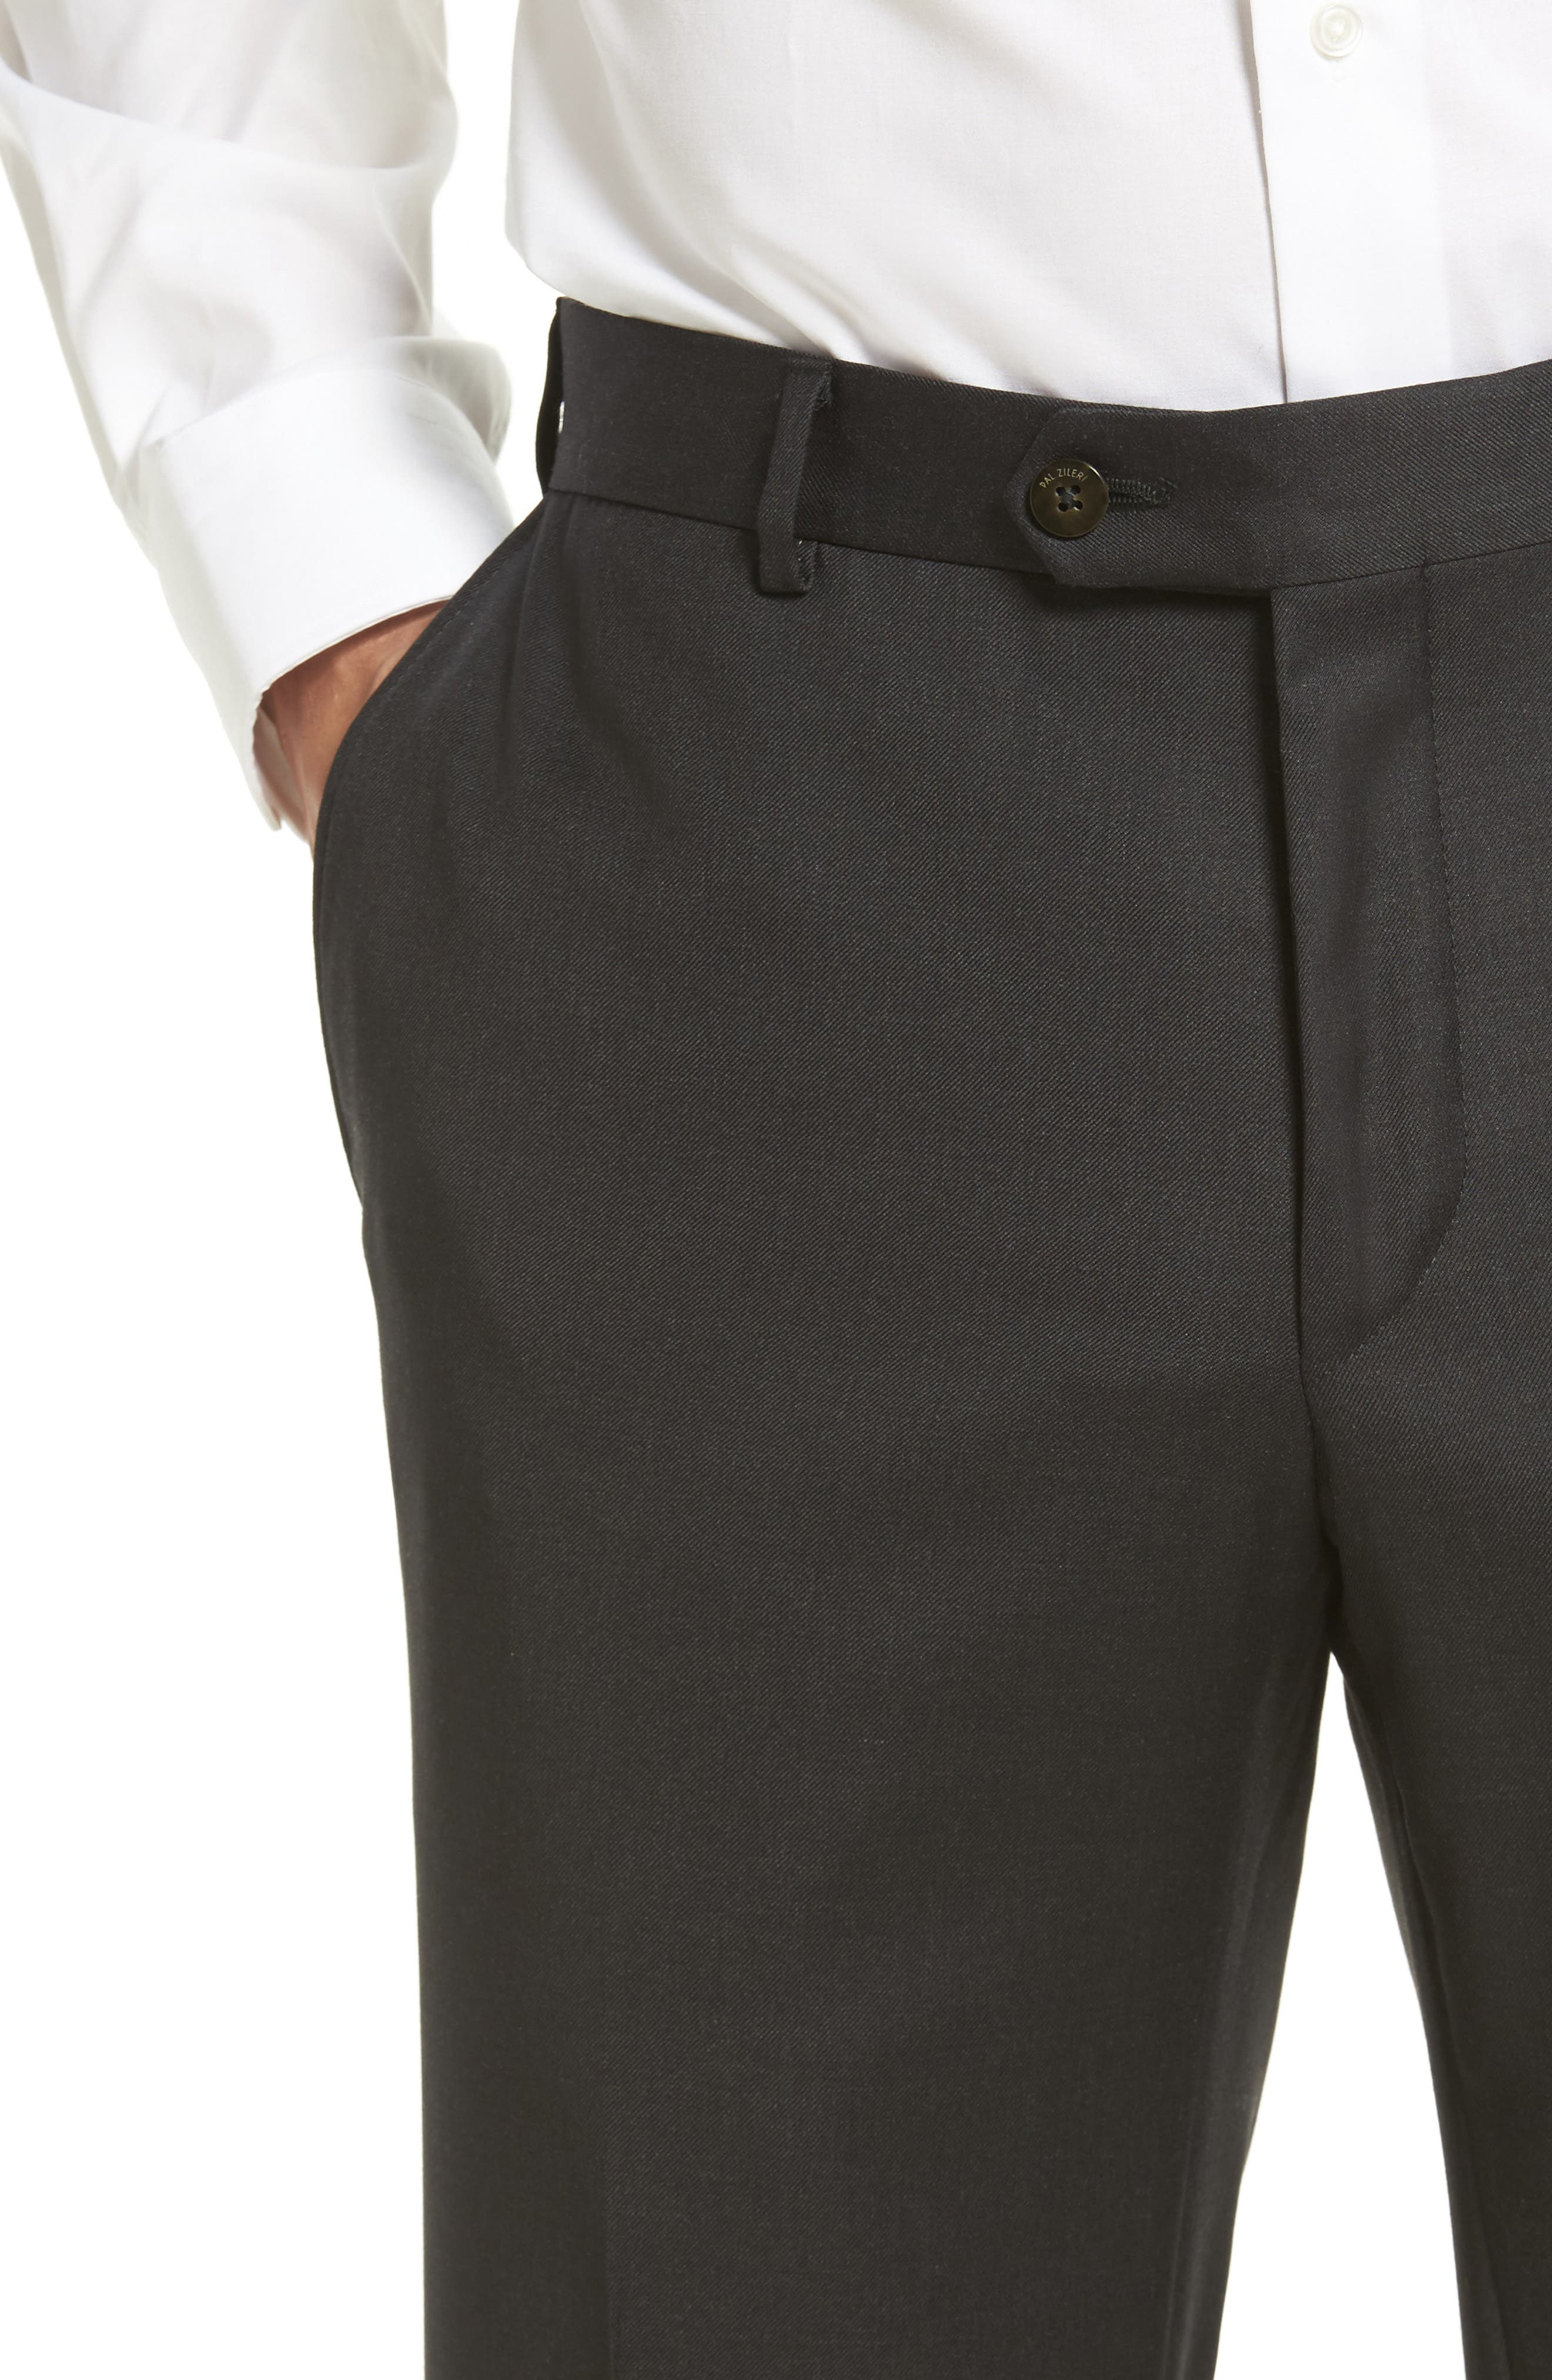 Flat Front Solid Wool Trousers,                             Alternate thumbnail 5, color,